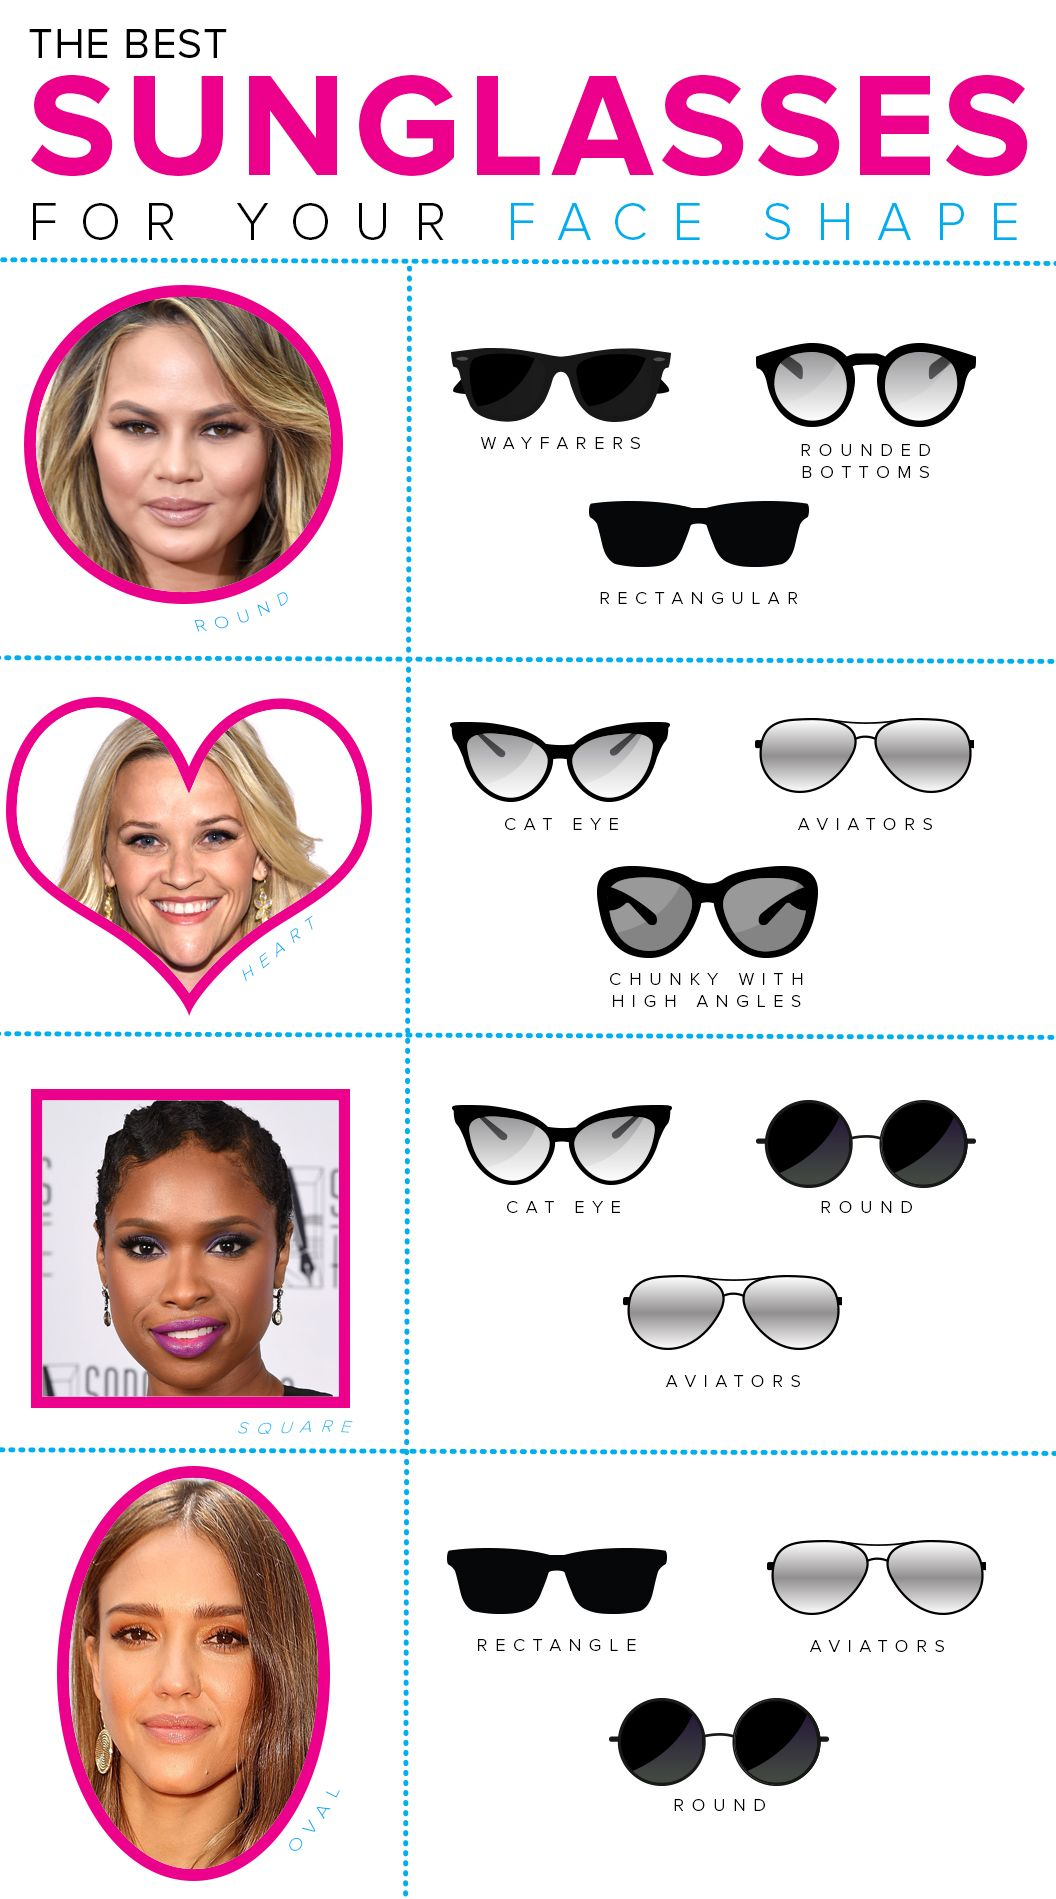 b8f4d828e0c This guide will help you find the best sunglasses for your face shape.  These sunglass styles will fit your face shape. There are tips to help make  the ...